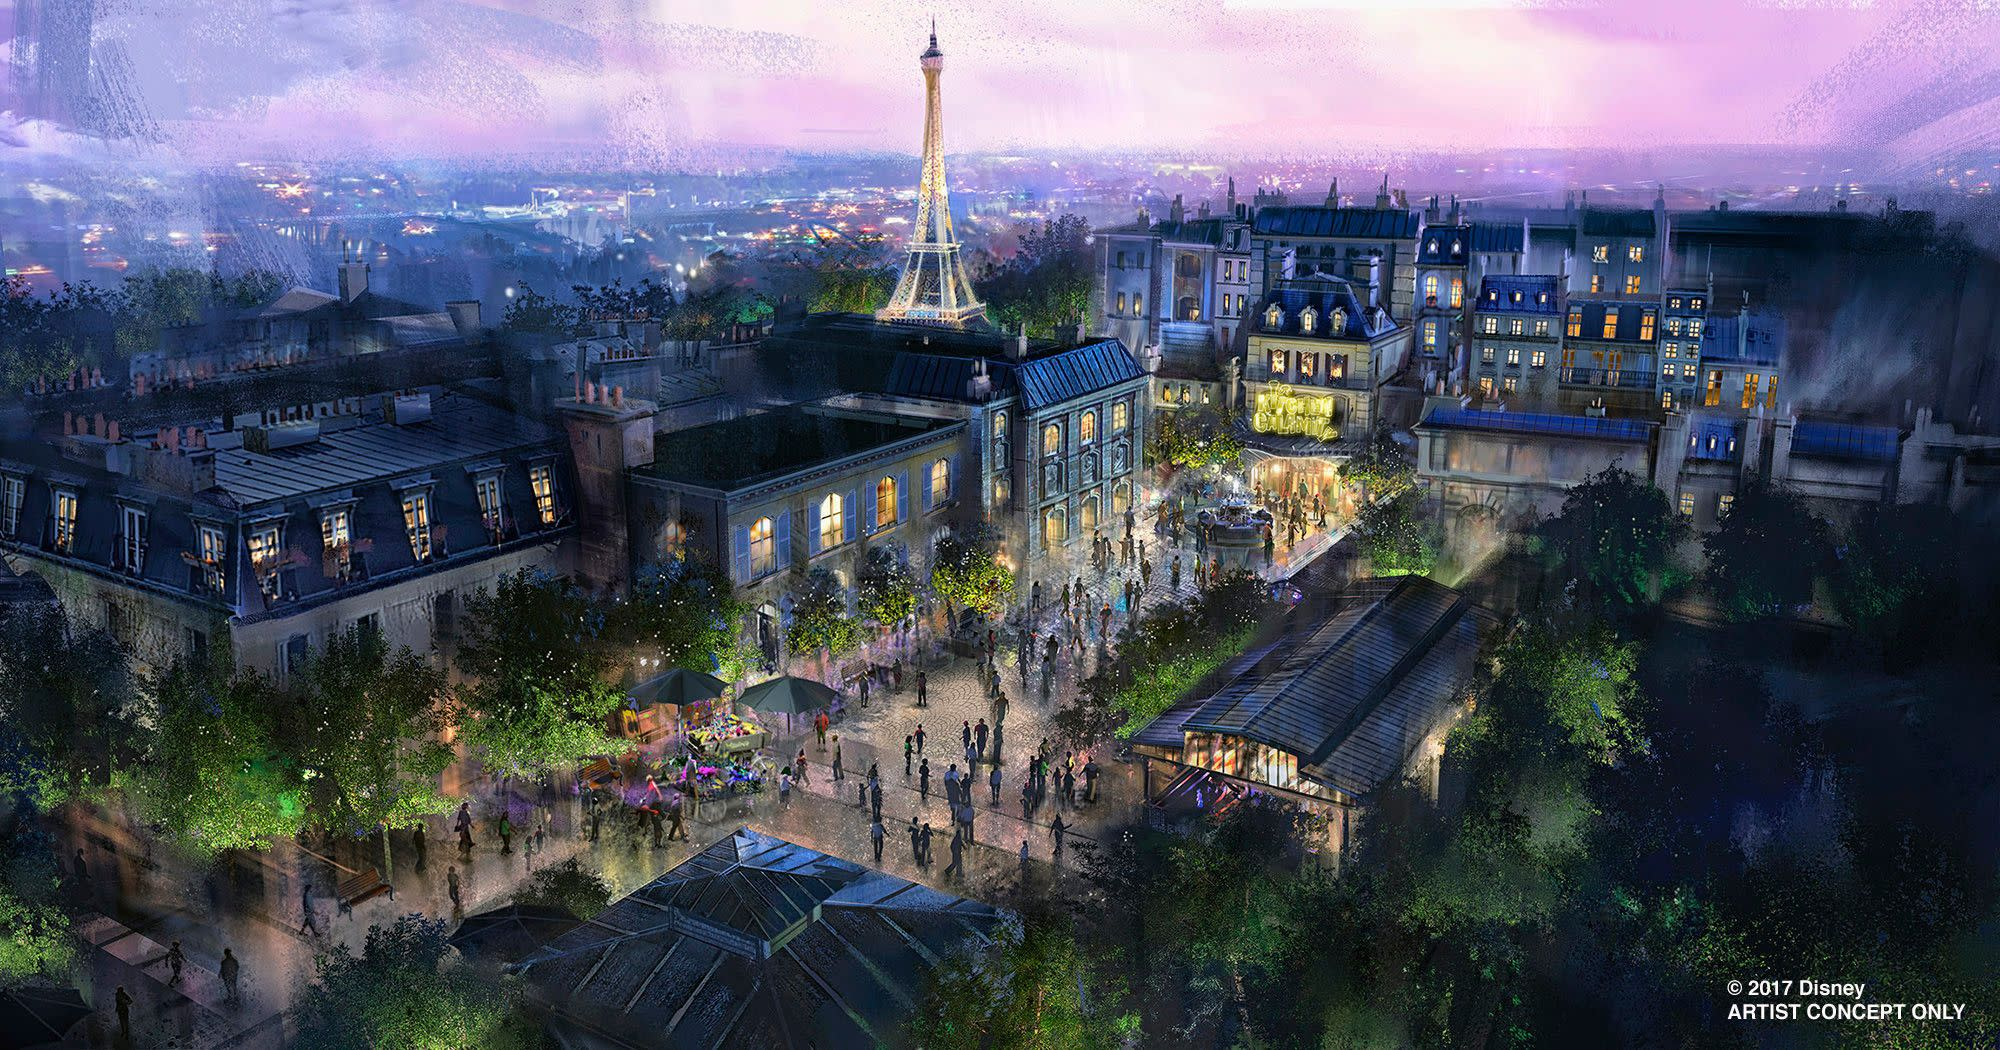 Concept Art for Remy's Ratatouille Adventure, Coming Summer 2020 to Epcot at Walt Disney World Resort in Orlando